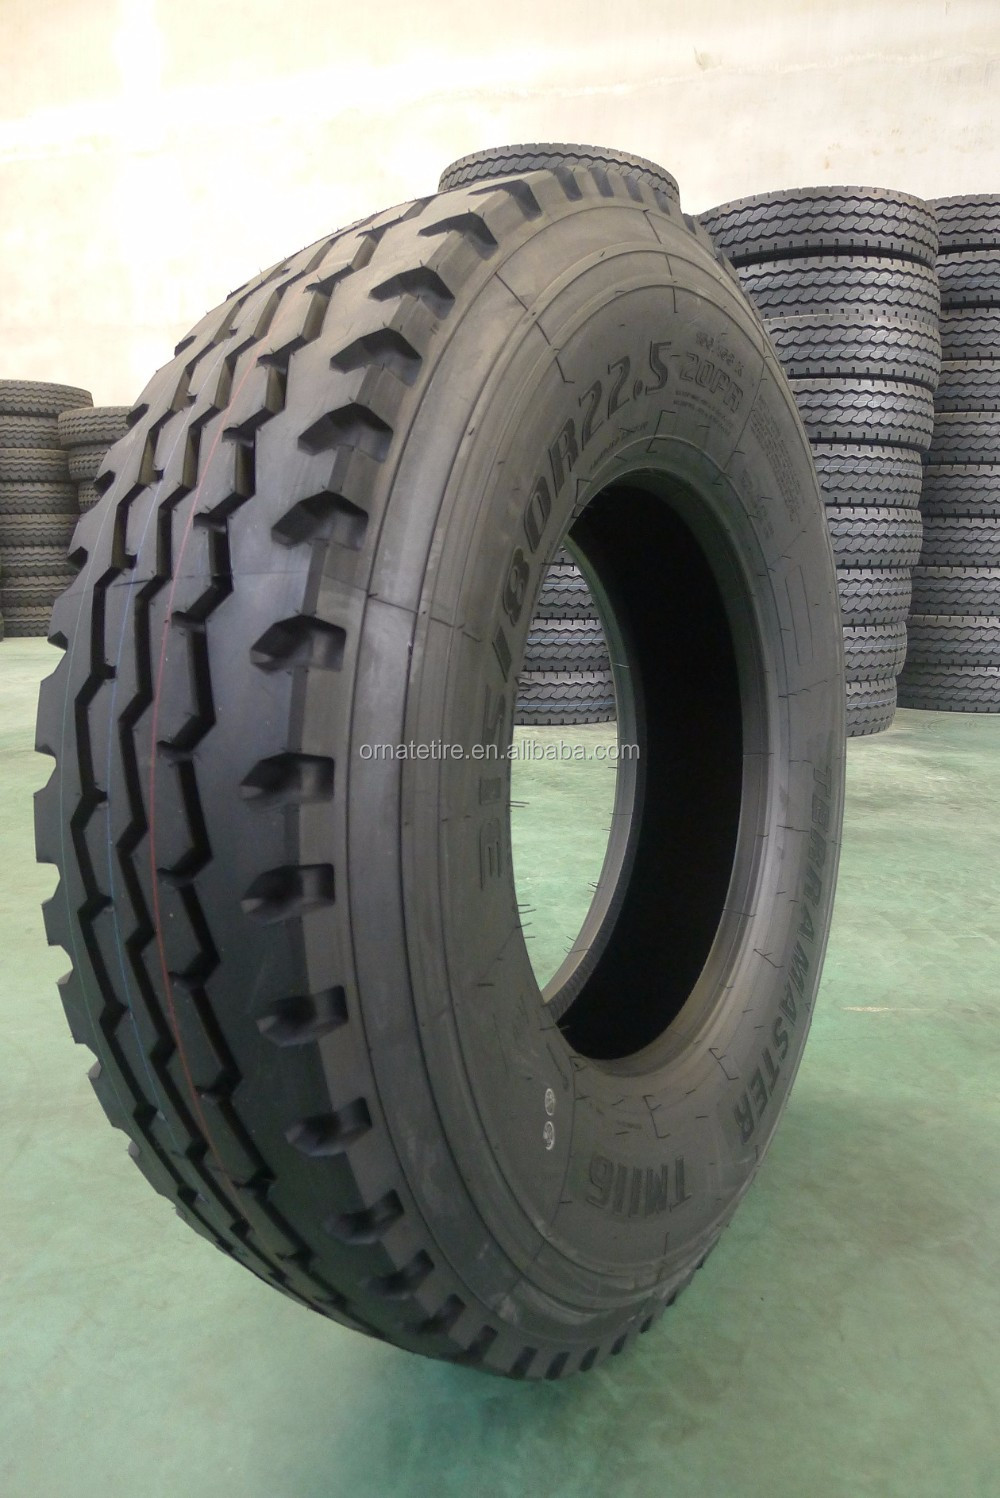 Chinese Truck Bus Tire 1000-20 1000r20 - Buy Truck Tyre 1000-20,Radial Truck Tires,Tyres Made In ...